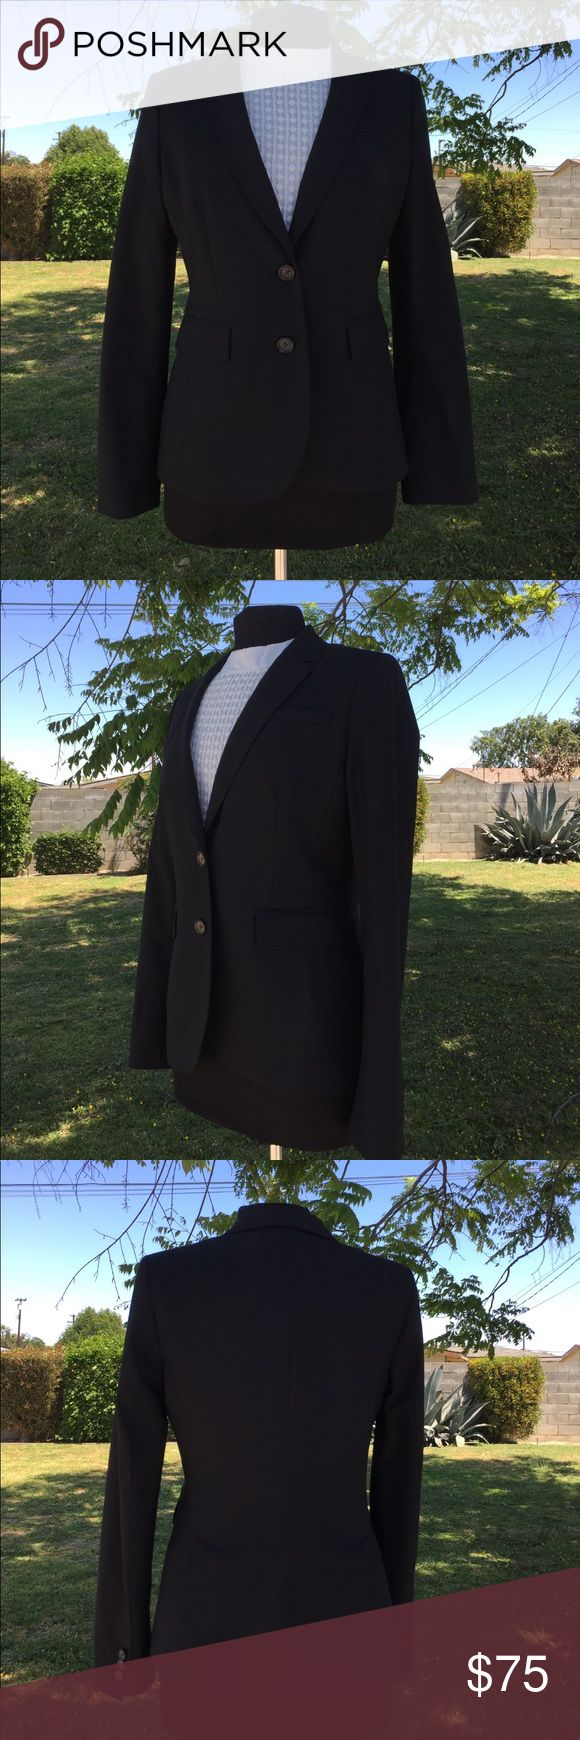 Banana Republic Black Wool Stretch Blazer 10 Banana Republic Black Wool Stretch Blazer 10 Banana Republic Jackets & Coats Blazers